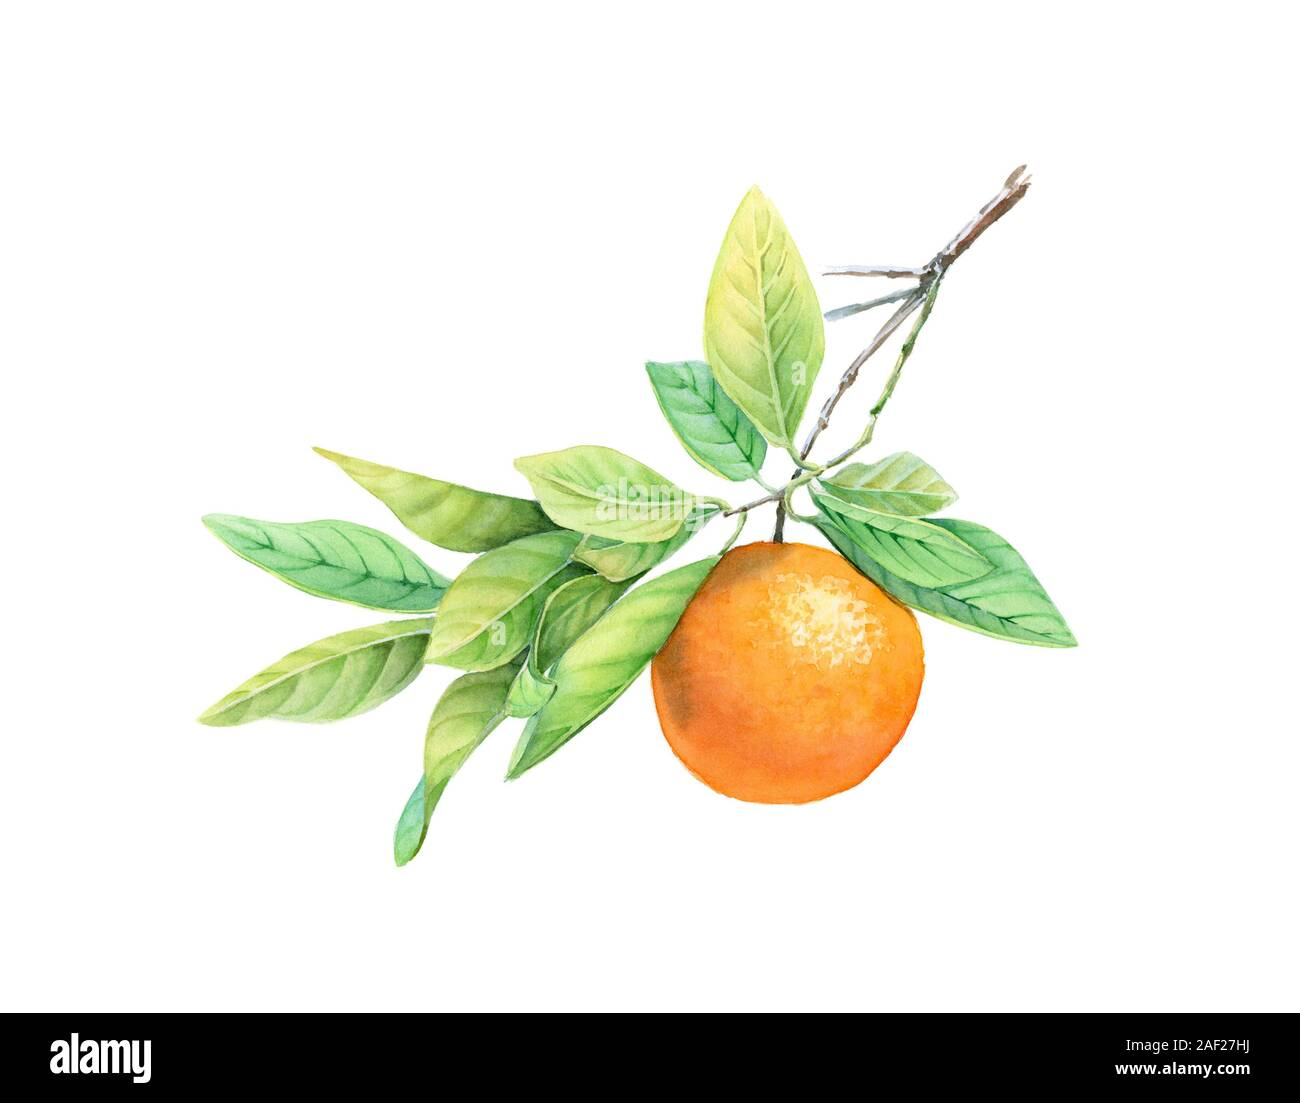 Watercolor Orange Fruit On The Branch Realistic Botanical Illustration With Exotic Food Hand Drawn Artwork Isolated On White For Label Design Cards Stock Photo Alamy